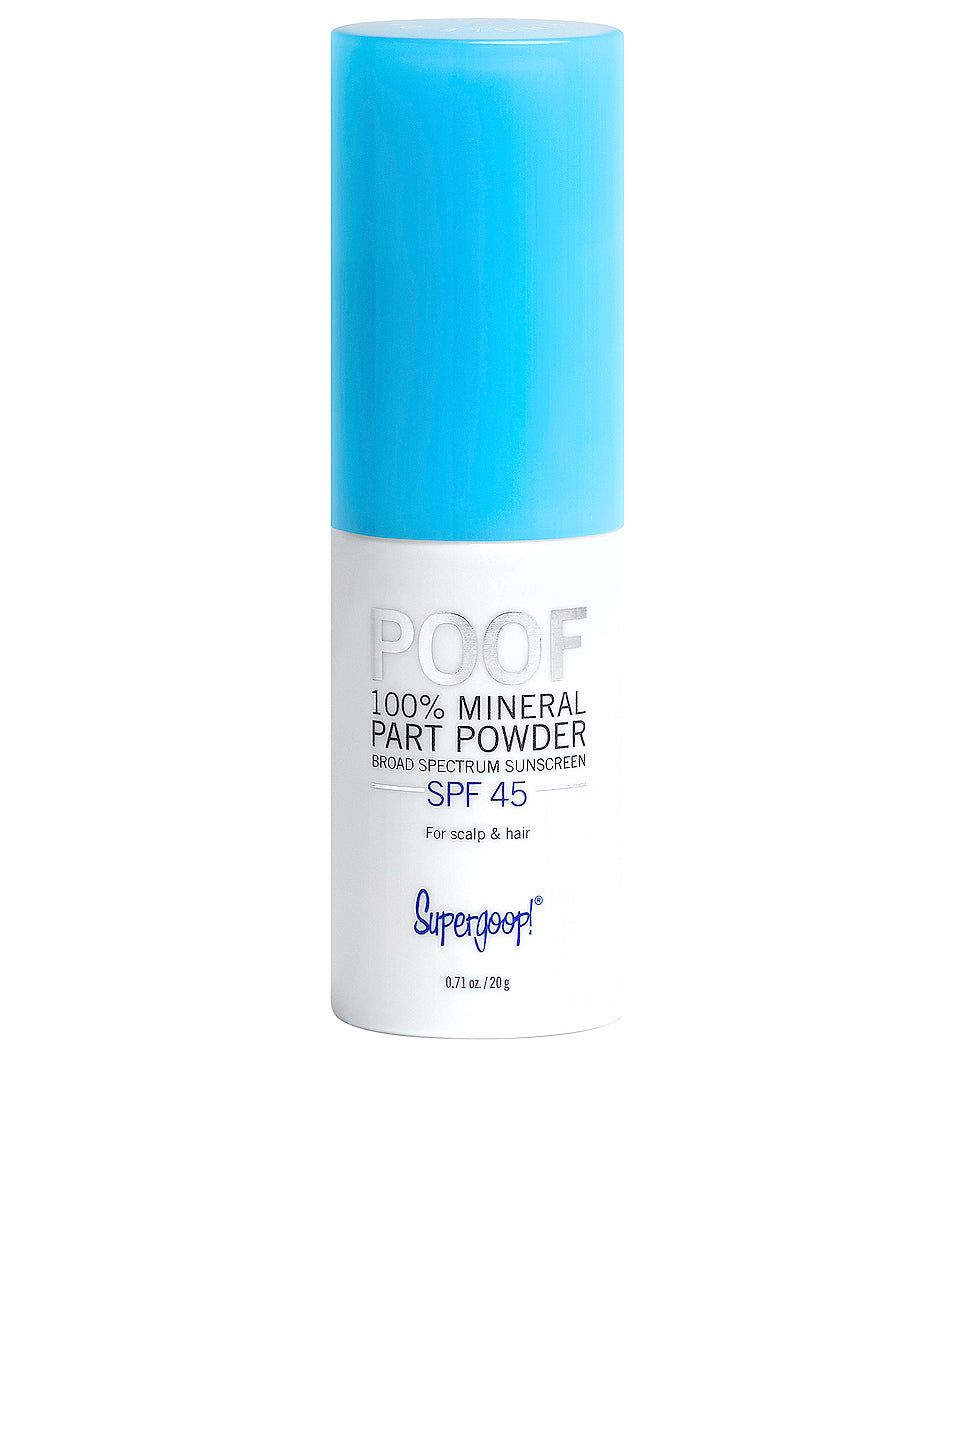 Poof Part Powder SPF 45, 0.71 oz.